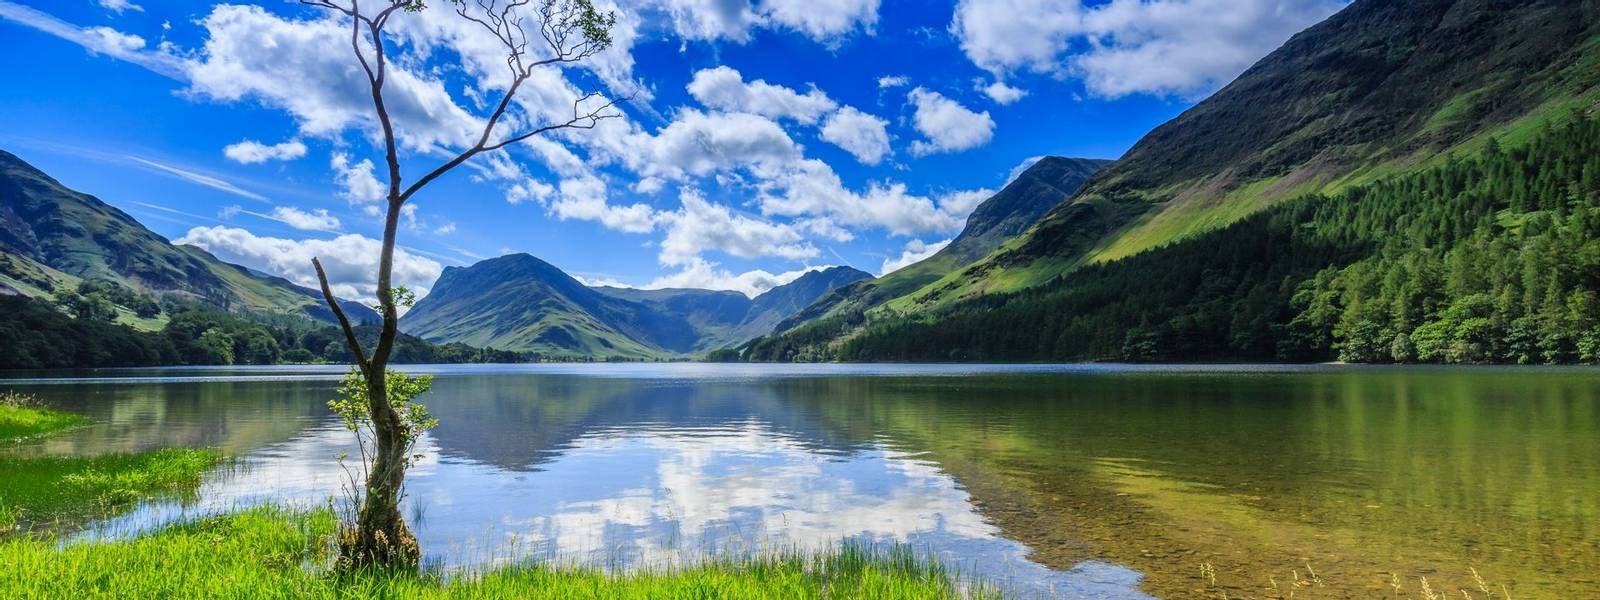 Lake District - Buttermere - AdobeStock_162915174.jpeg